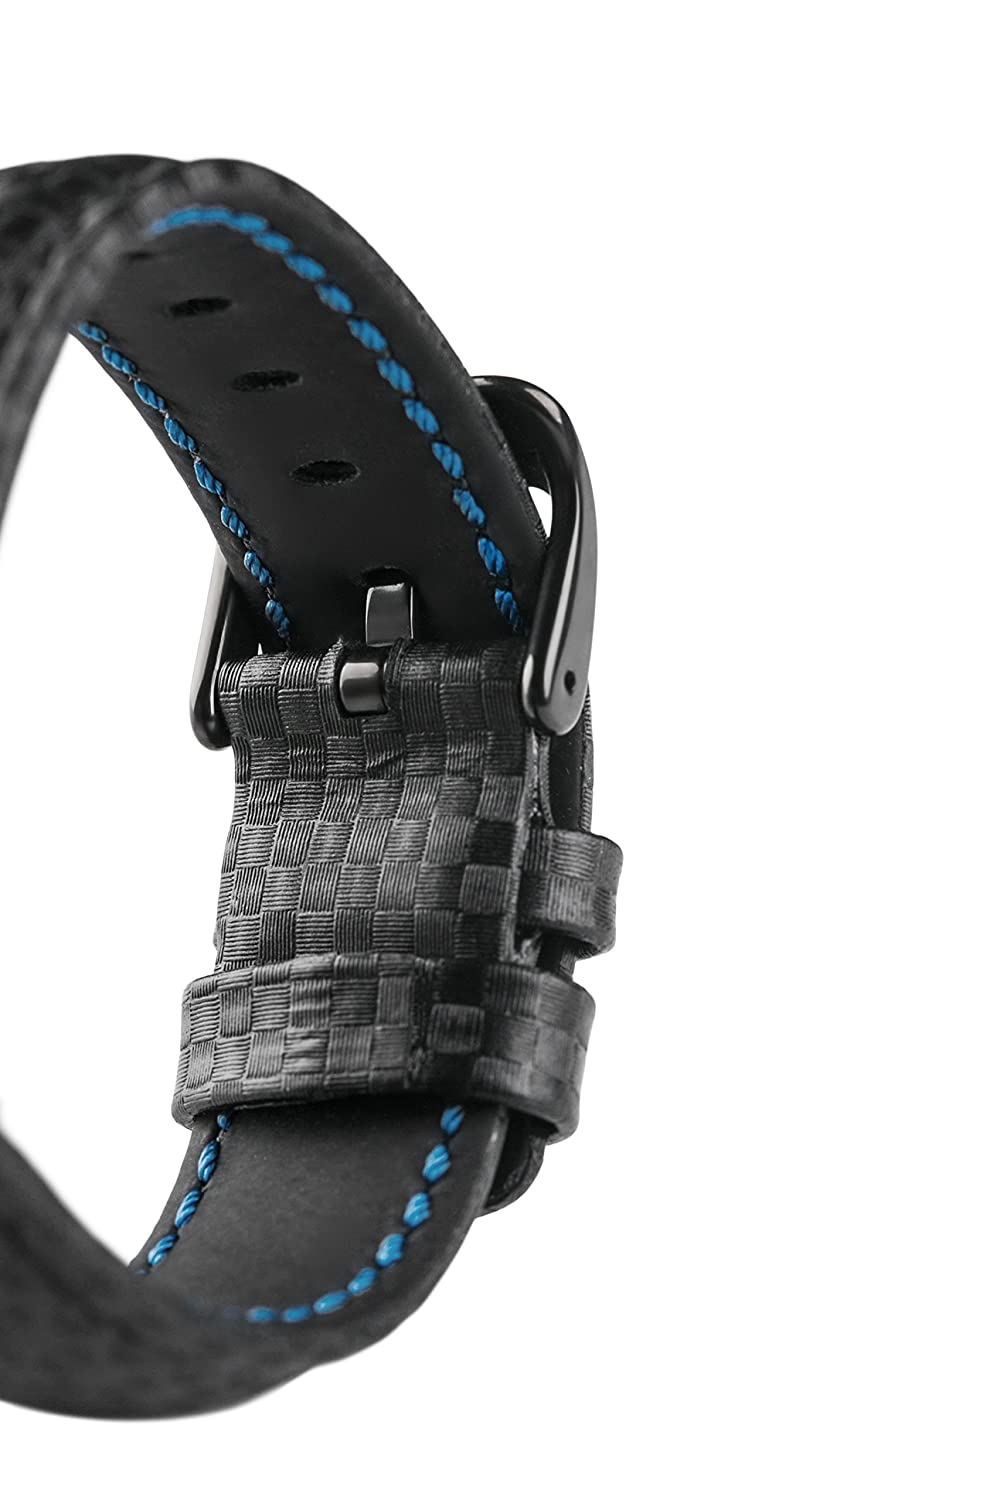 Signature Carbon watch band. Replacement watch strap. Genuine leather. Silver Buckle (24 mm, Black - Black Buckle) | Amazon.com